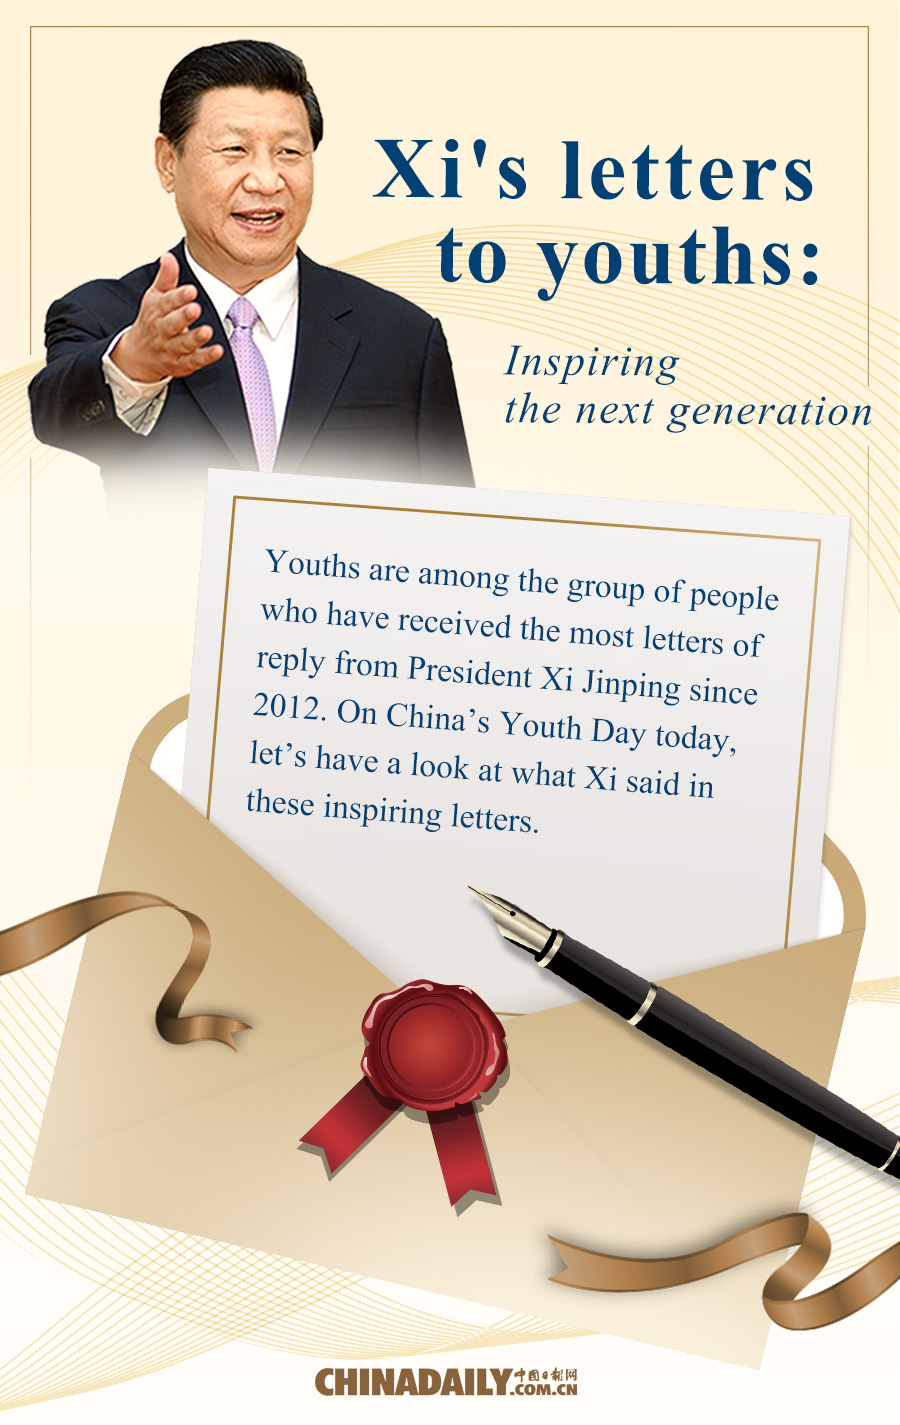 Xi's letters to youths: Inspiring the next generation